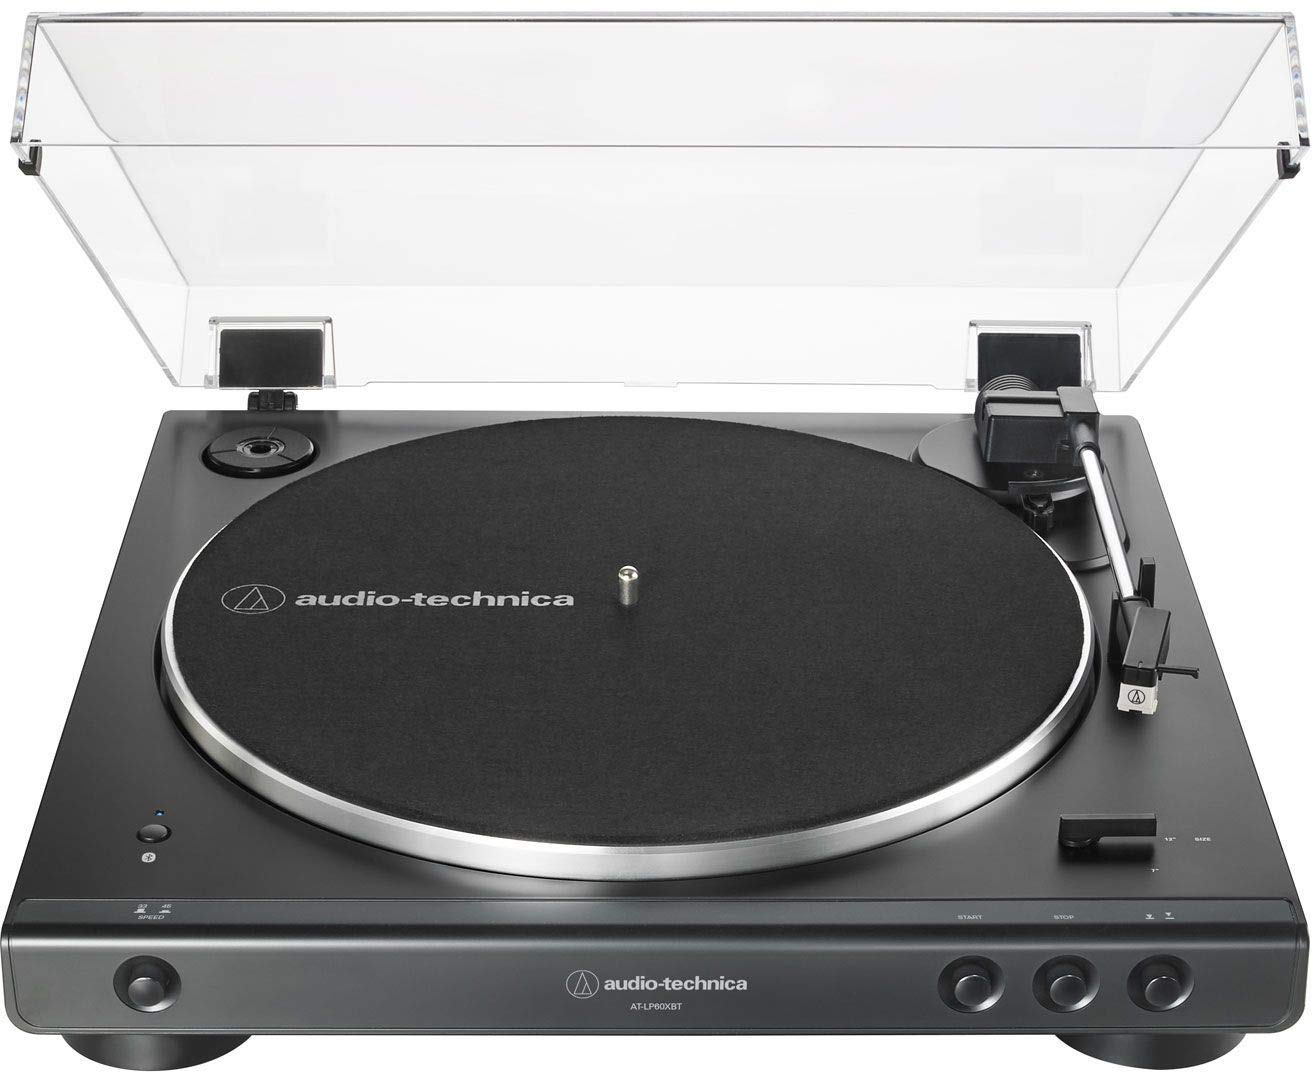 Audio-Technica AT-LP60XBT-BK Fully Automatic Bluetooth Belt-Drive Stereo Turntable, Black, Hi-Fidelity, Plays 33 -1/3 and 45 RPM Vinyl Records, Dust Cover, Anti-Resonance, Die-cast Aluminum Platter by Audio-Technica (Image #1)